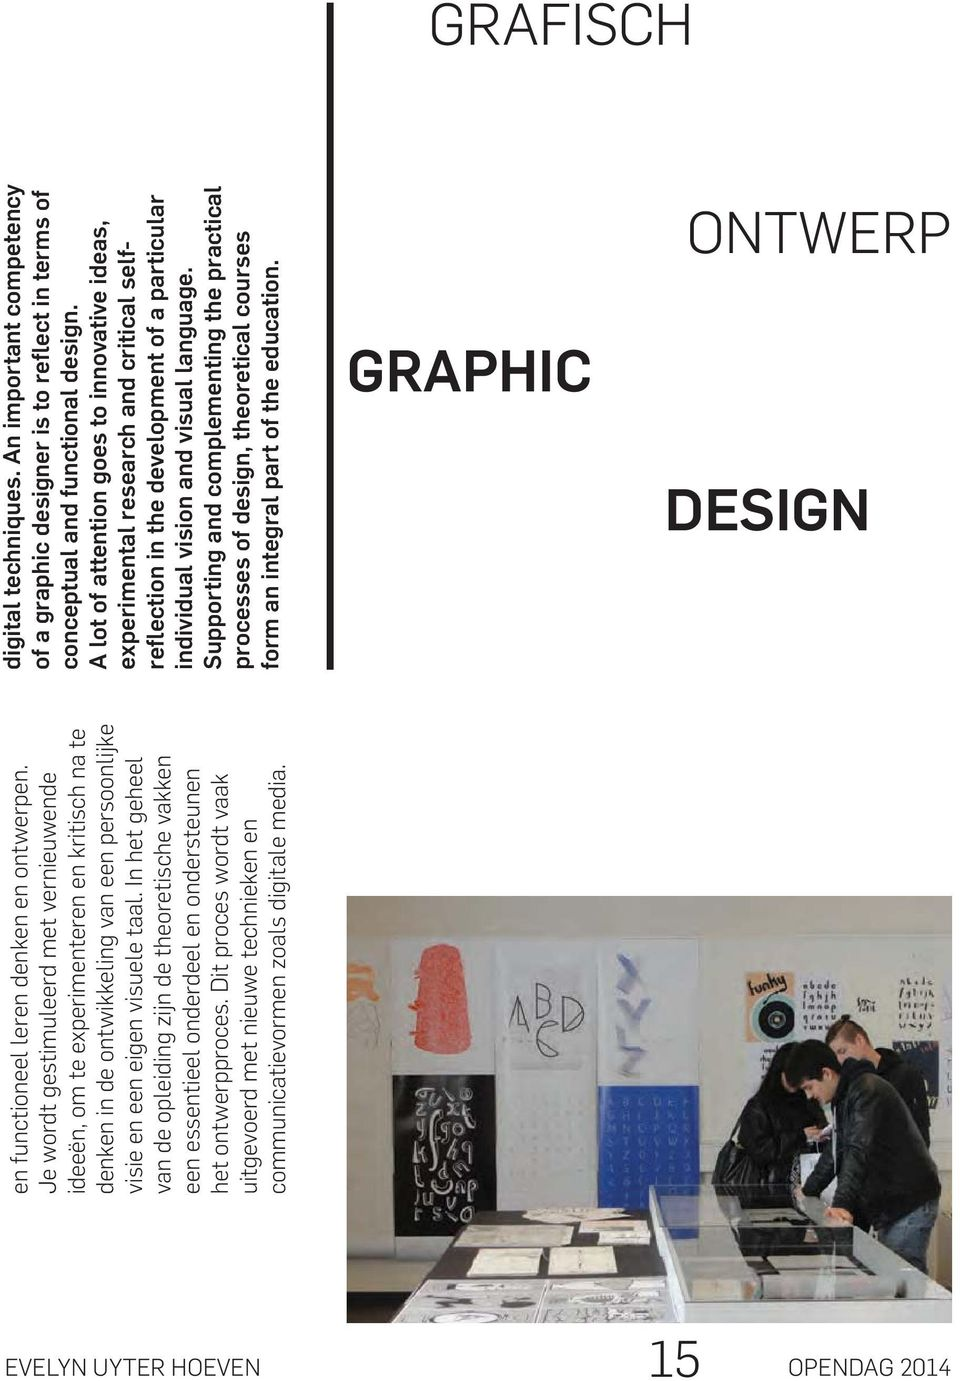 Supporting and complementing the practical processes of design, theoretical courses form an integral part of the education. GRAPHIC ONTWERP DESIGN en functioneel leren denken en ontwerpen.